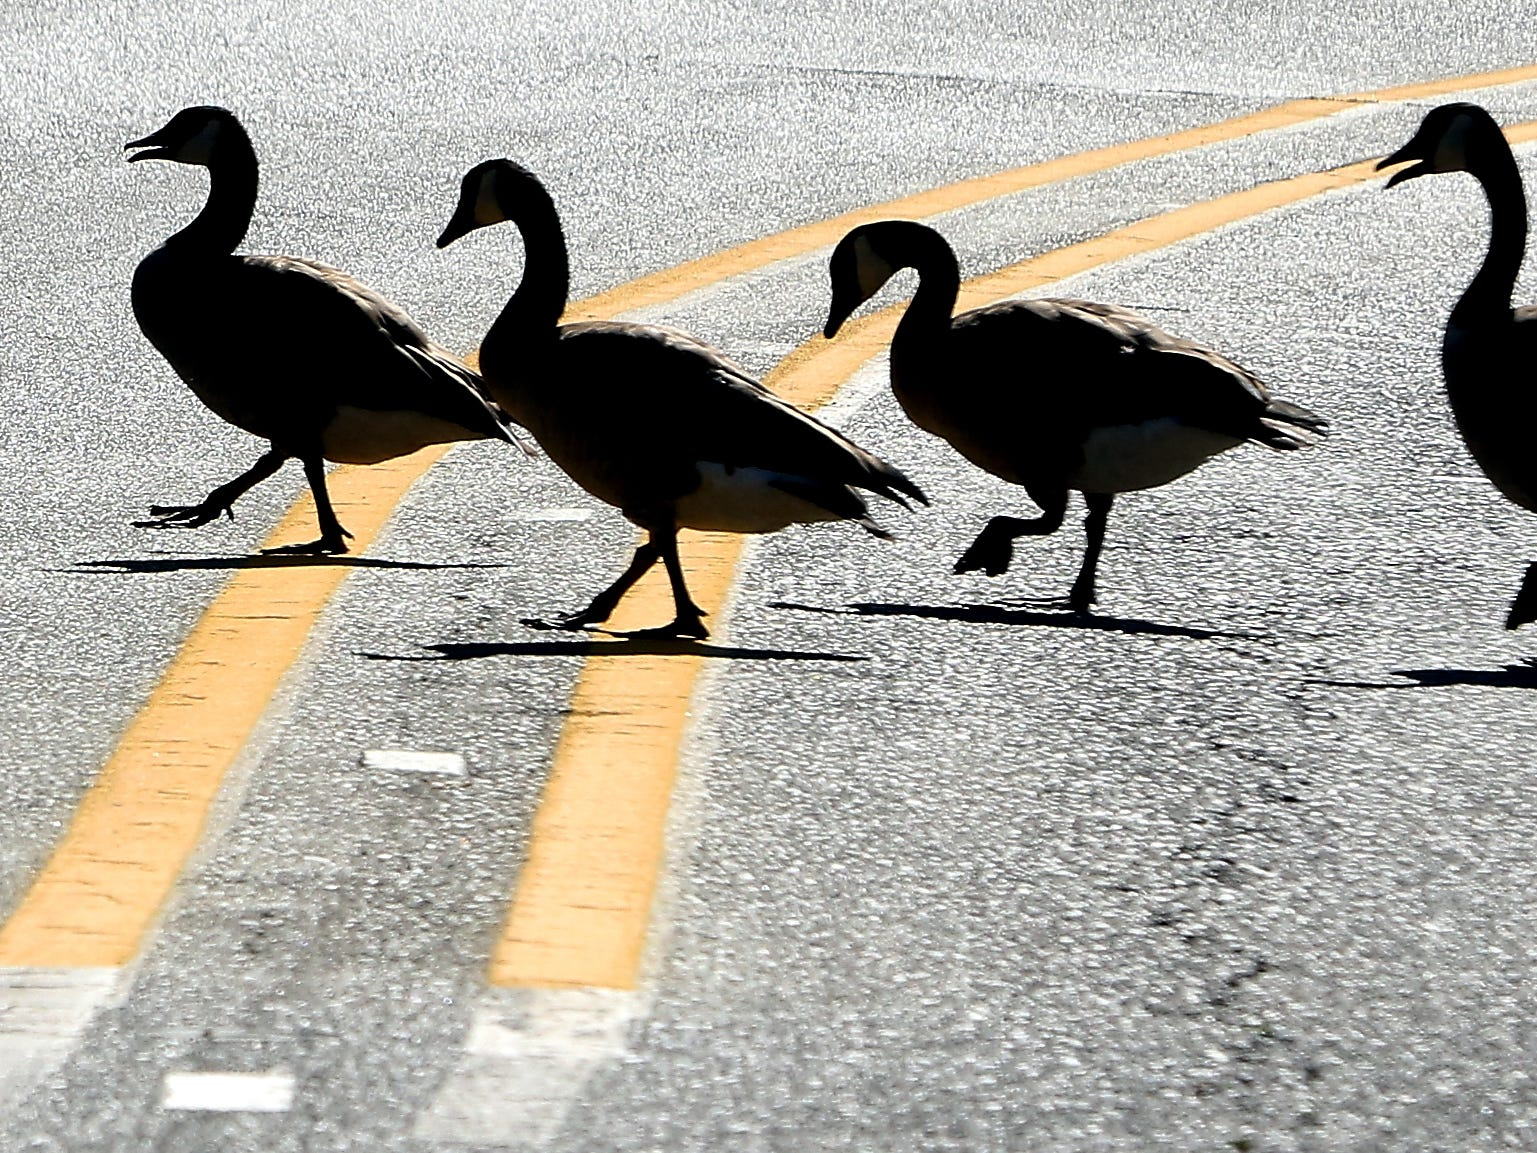 A flock of Canada geese are silhouetted against the pavement as they cross in Scandia Road in Poulsbo on a sunny Thursday, July 26, 2018.